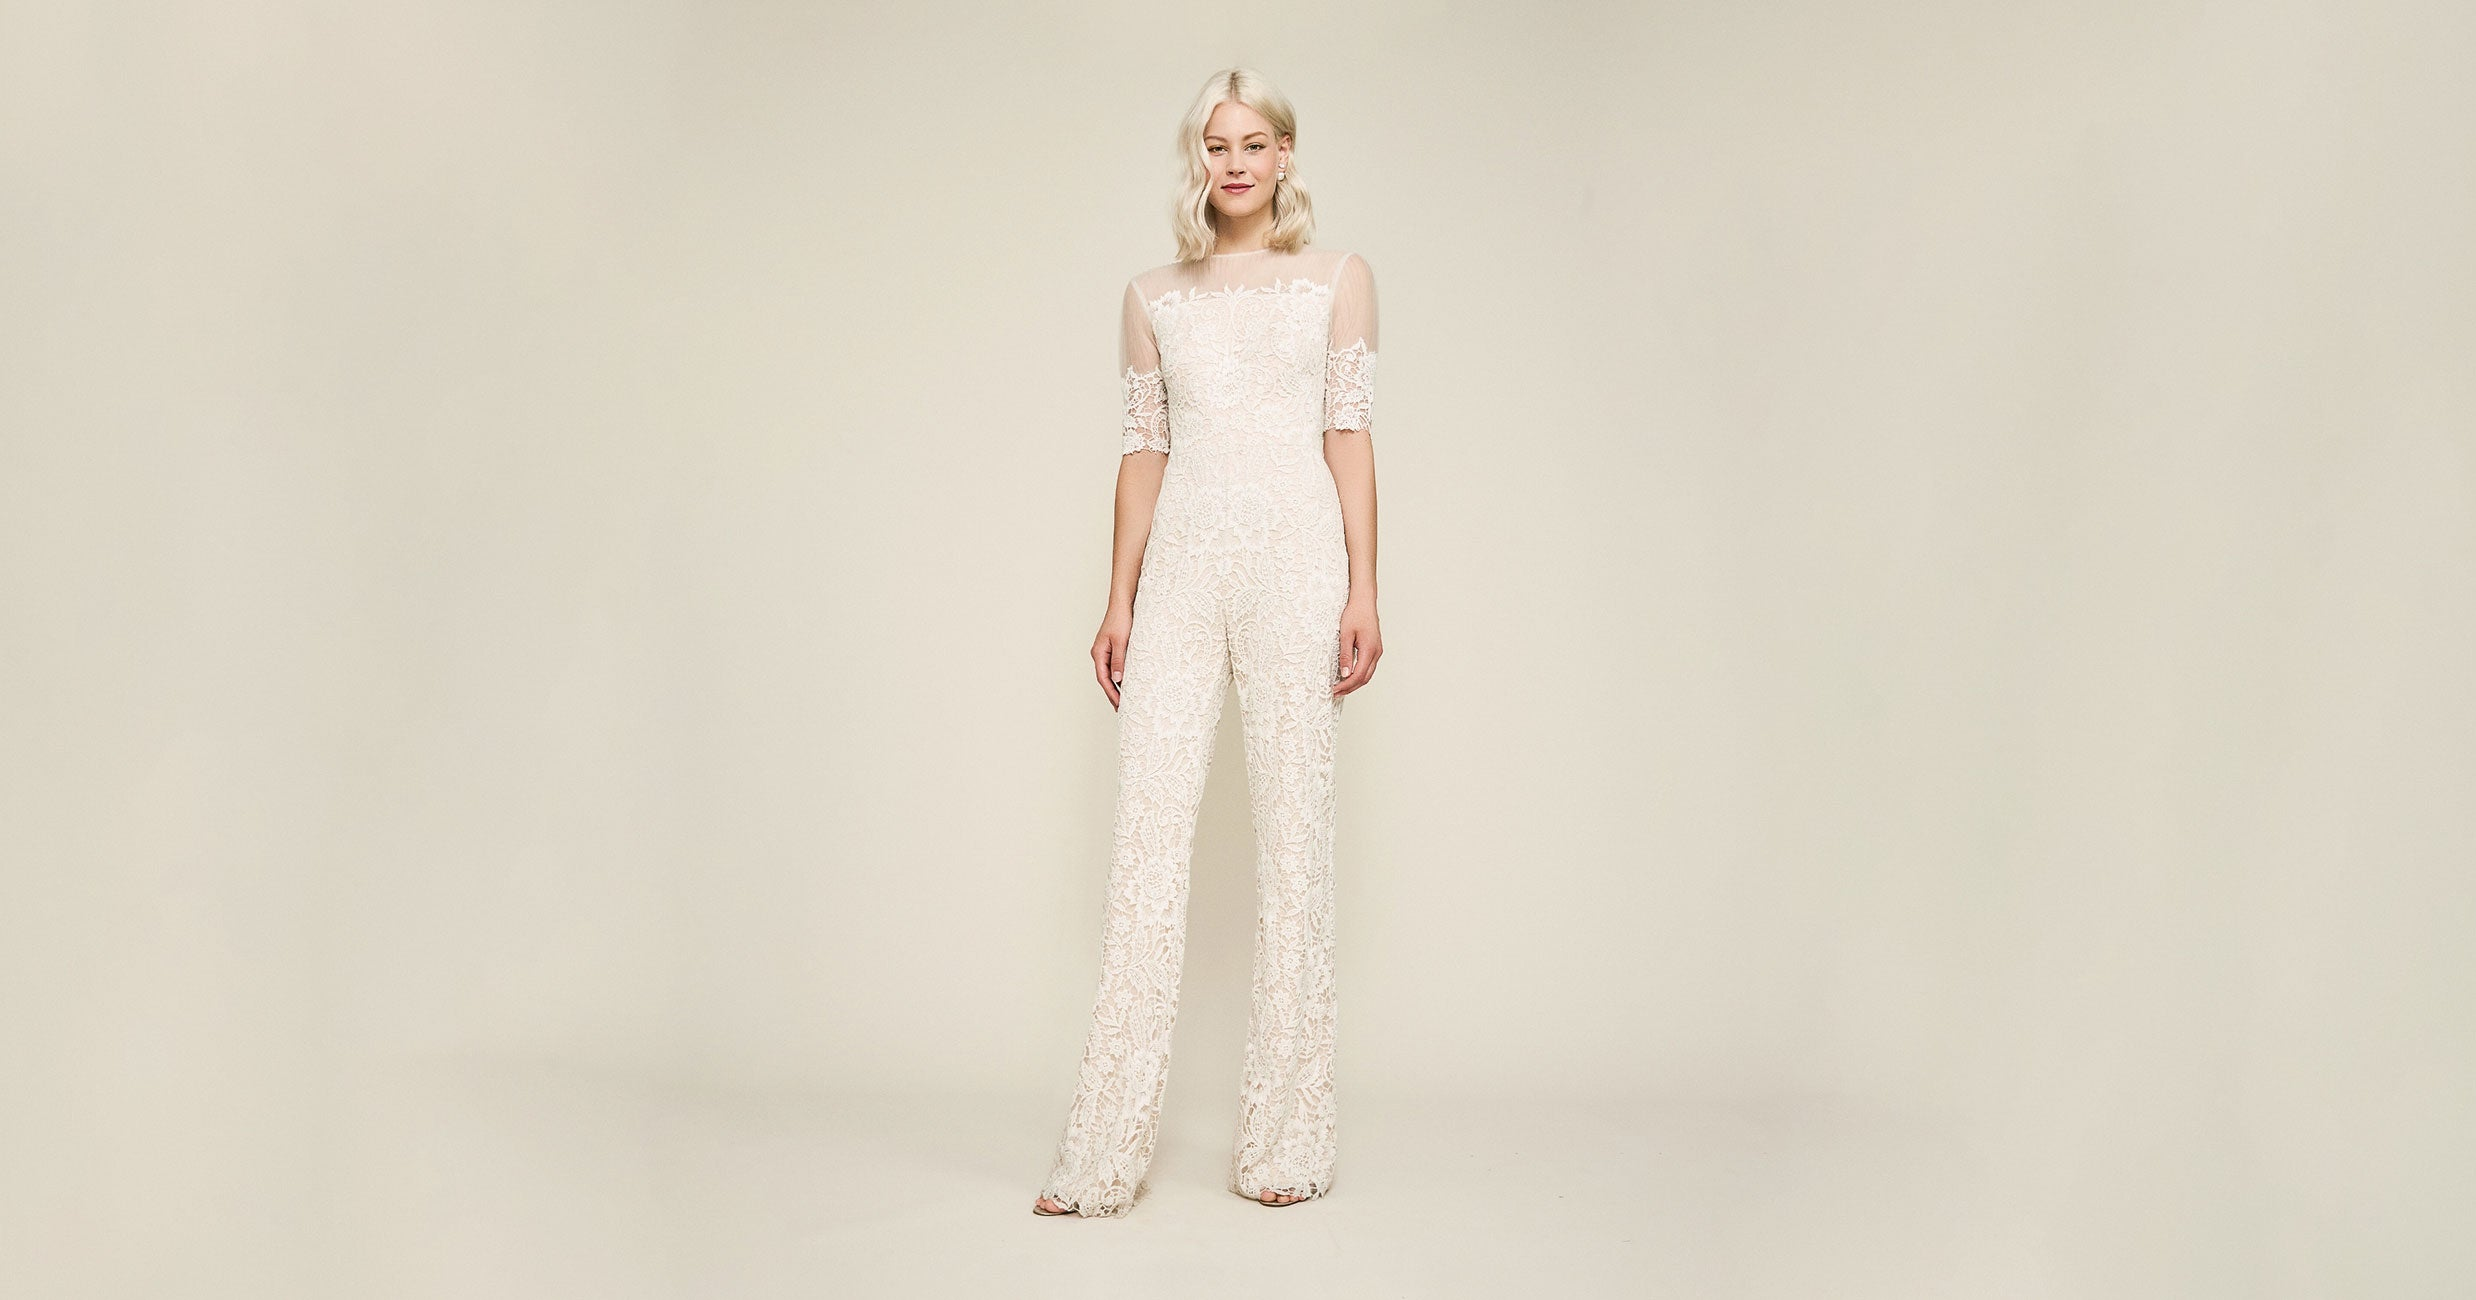 11 White Jumpsuits That Will Make You Want To Ditch The Wedding Dress